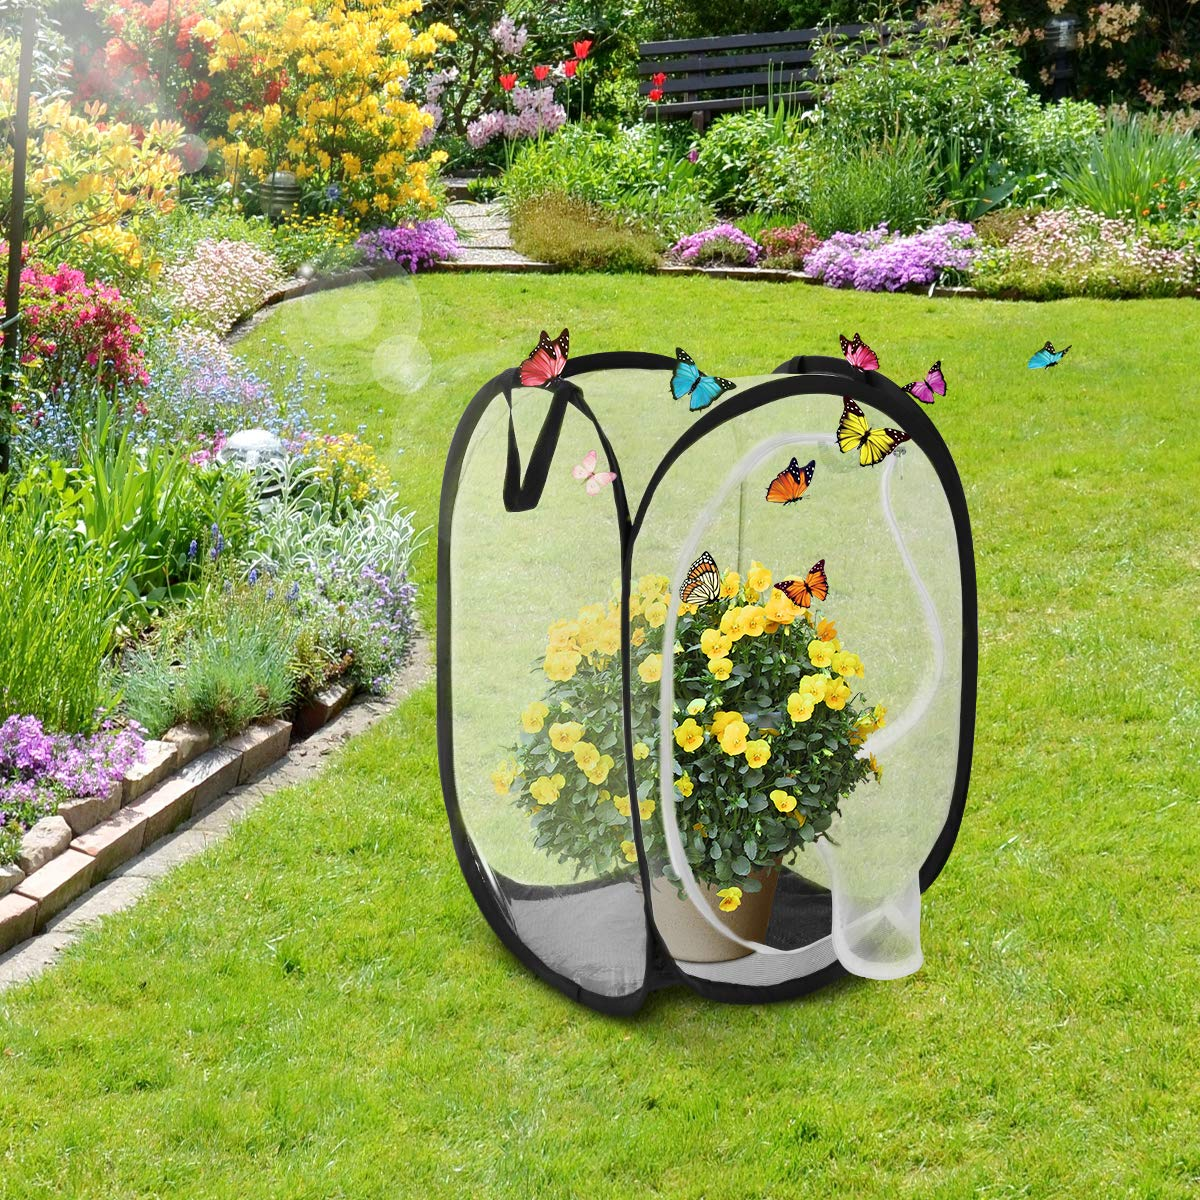 24 in Tall Black UEETEK Insect Butterfly Habitat Large Portable Insect Monarch Butterfly Mesh Net Cage Terrarium Pop-up